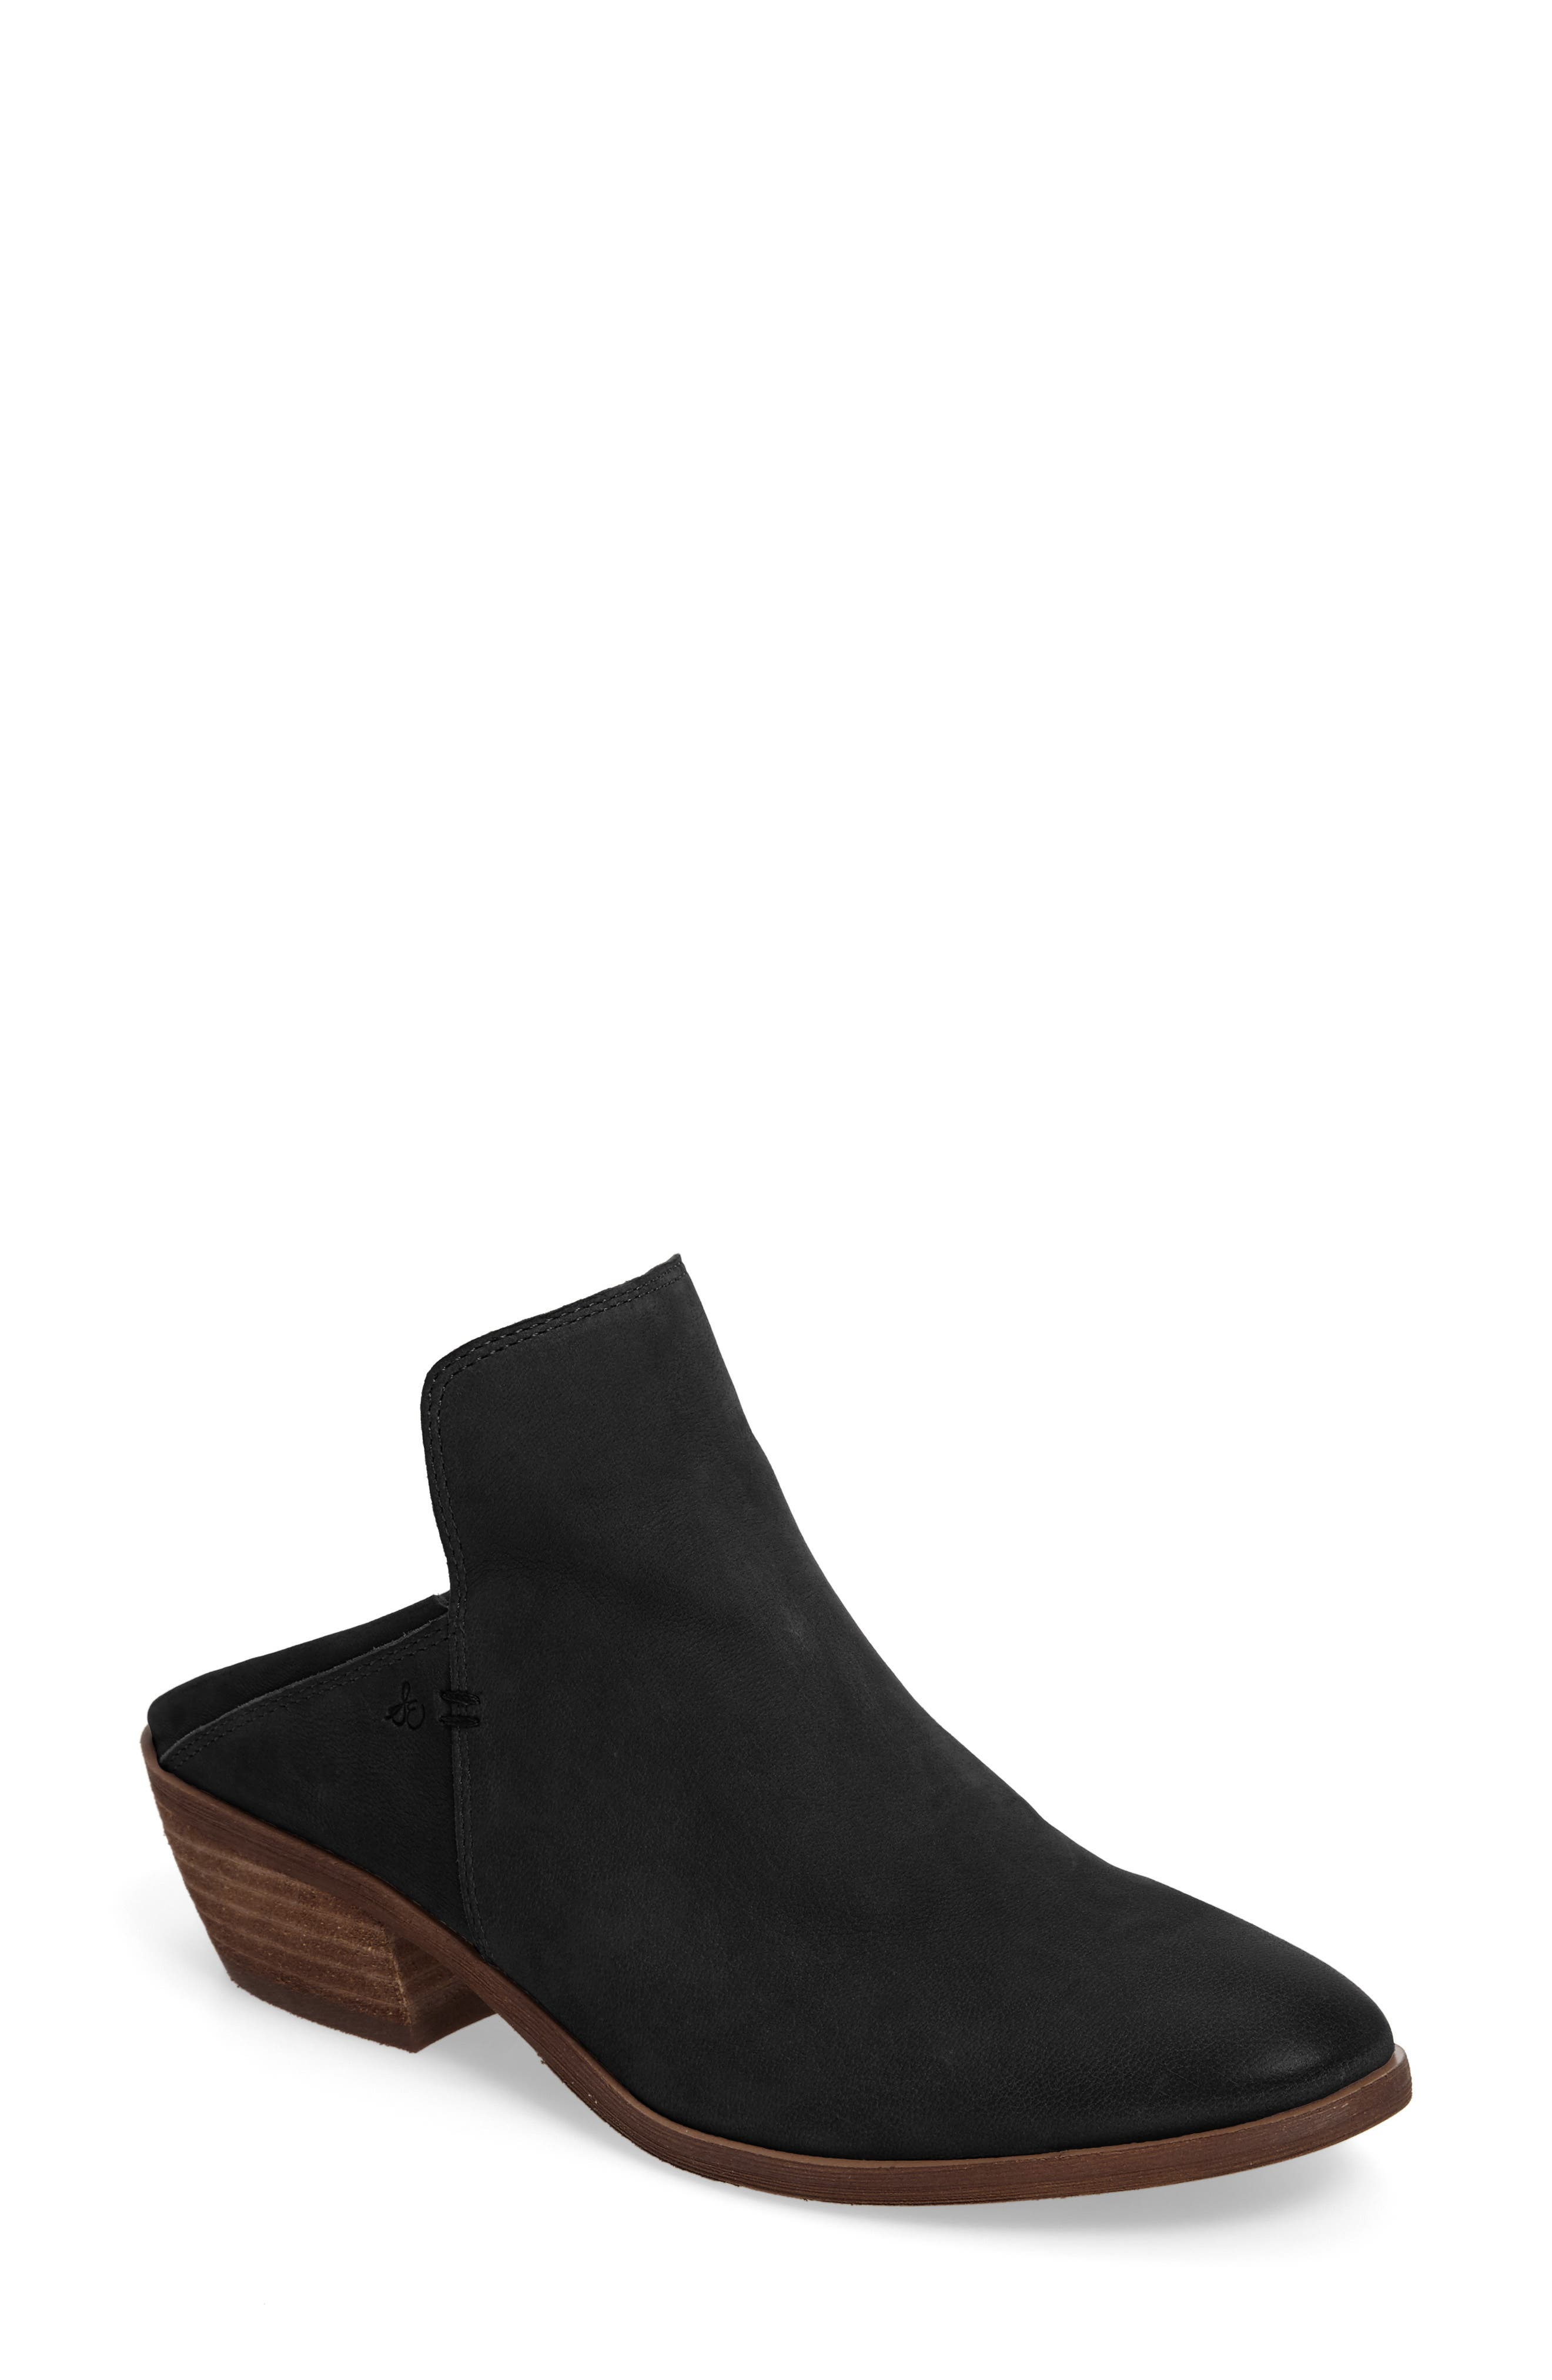 Prentice Convertible Ankle Boot,                         Main,                         color,